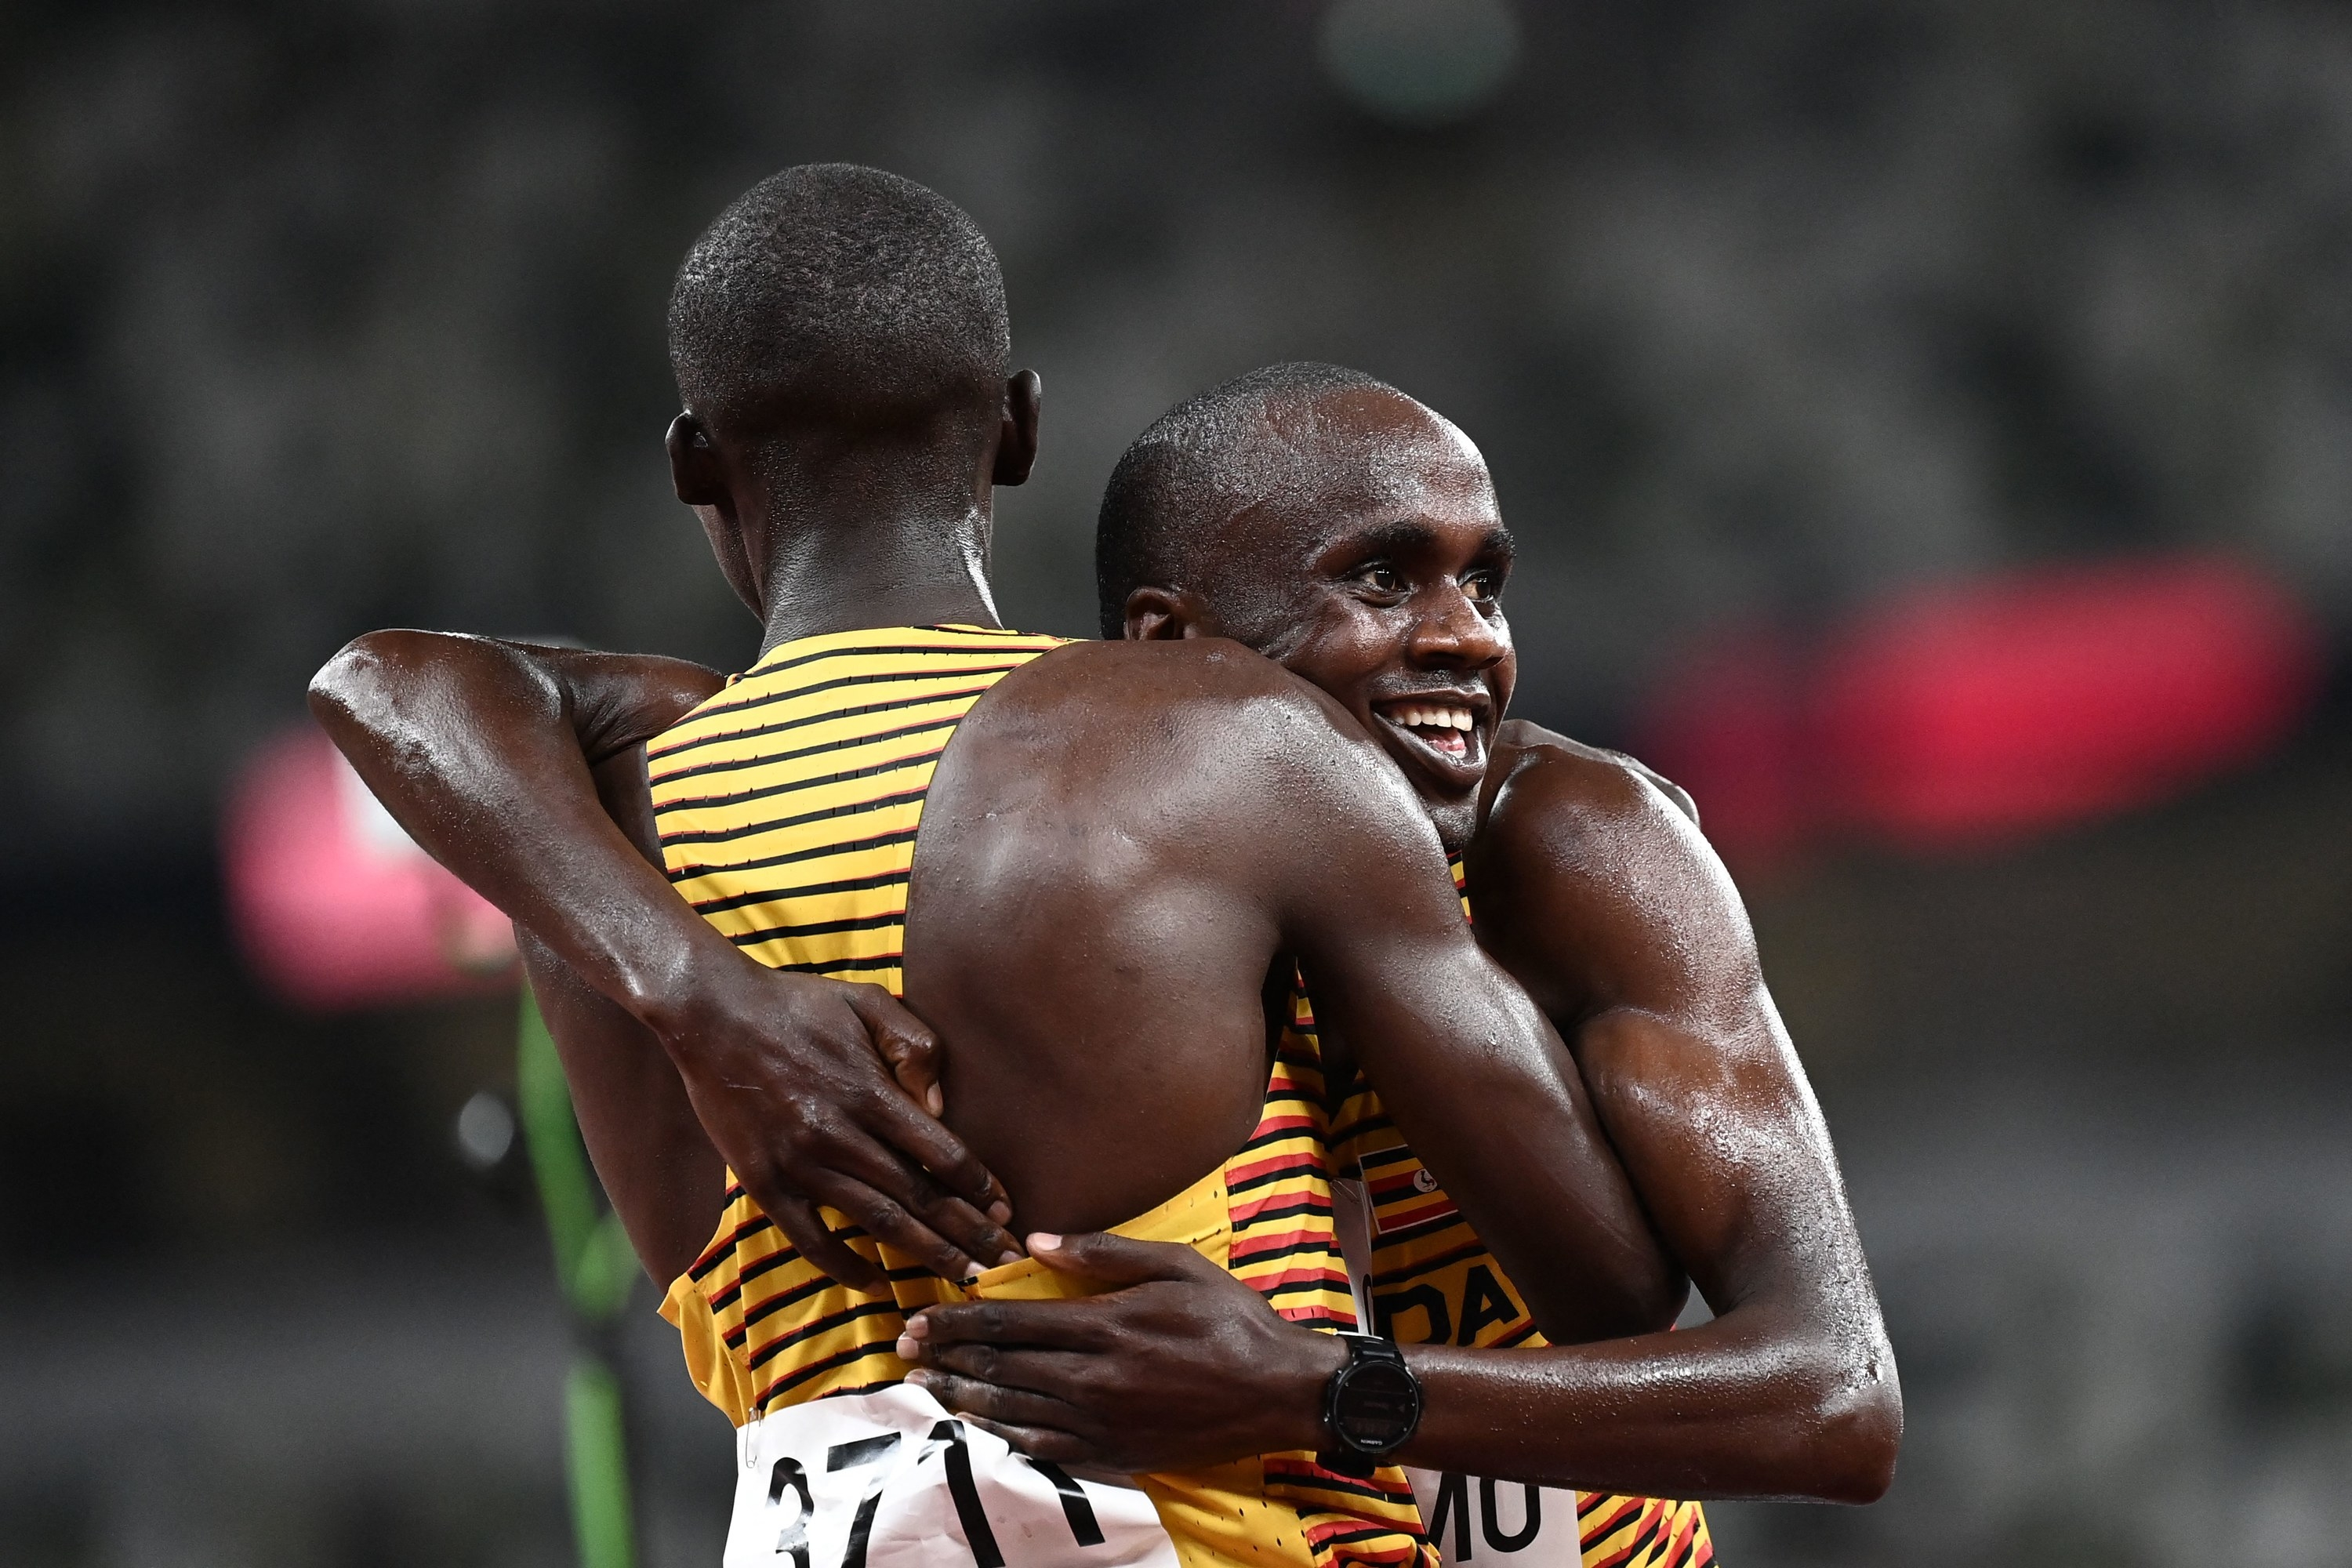 Ugandan runners embrace after competing on the track at the Olympics.